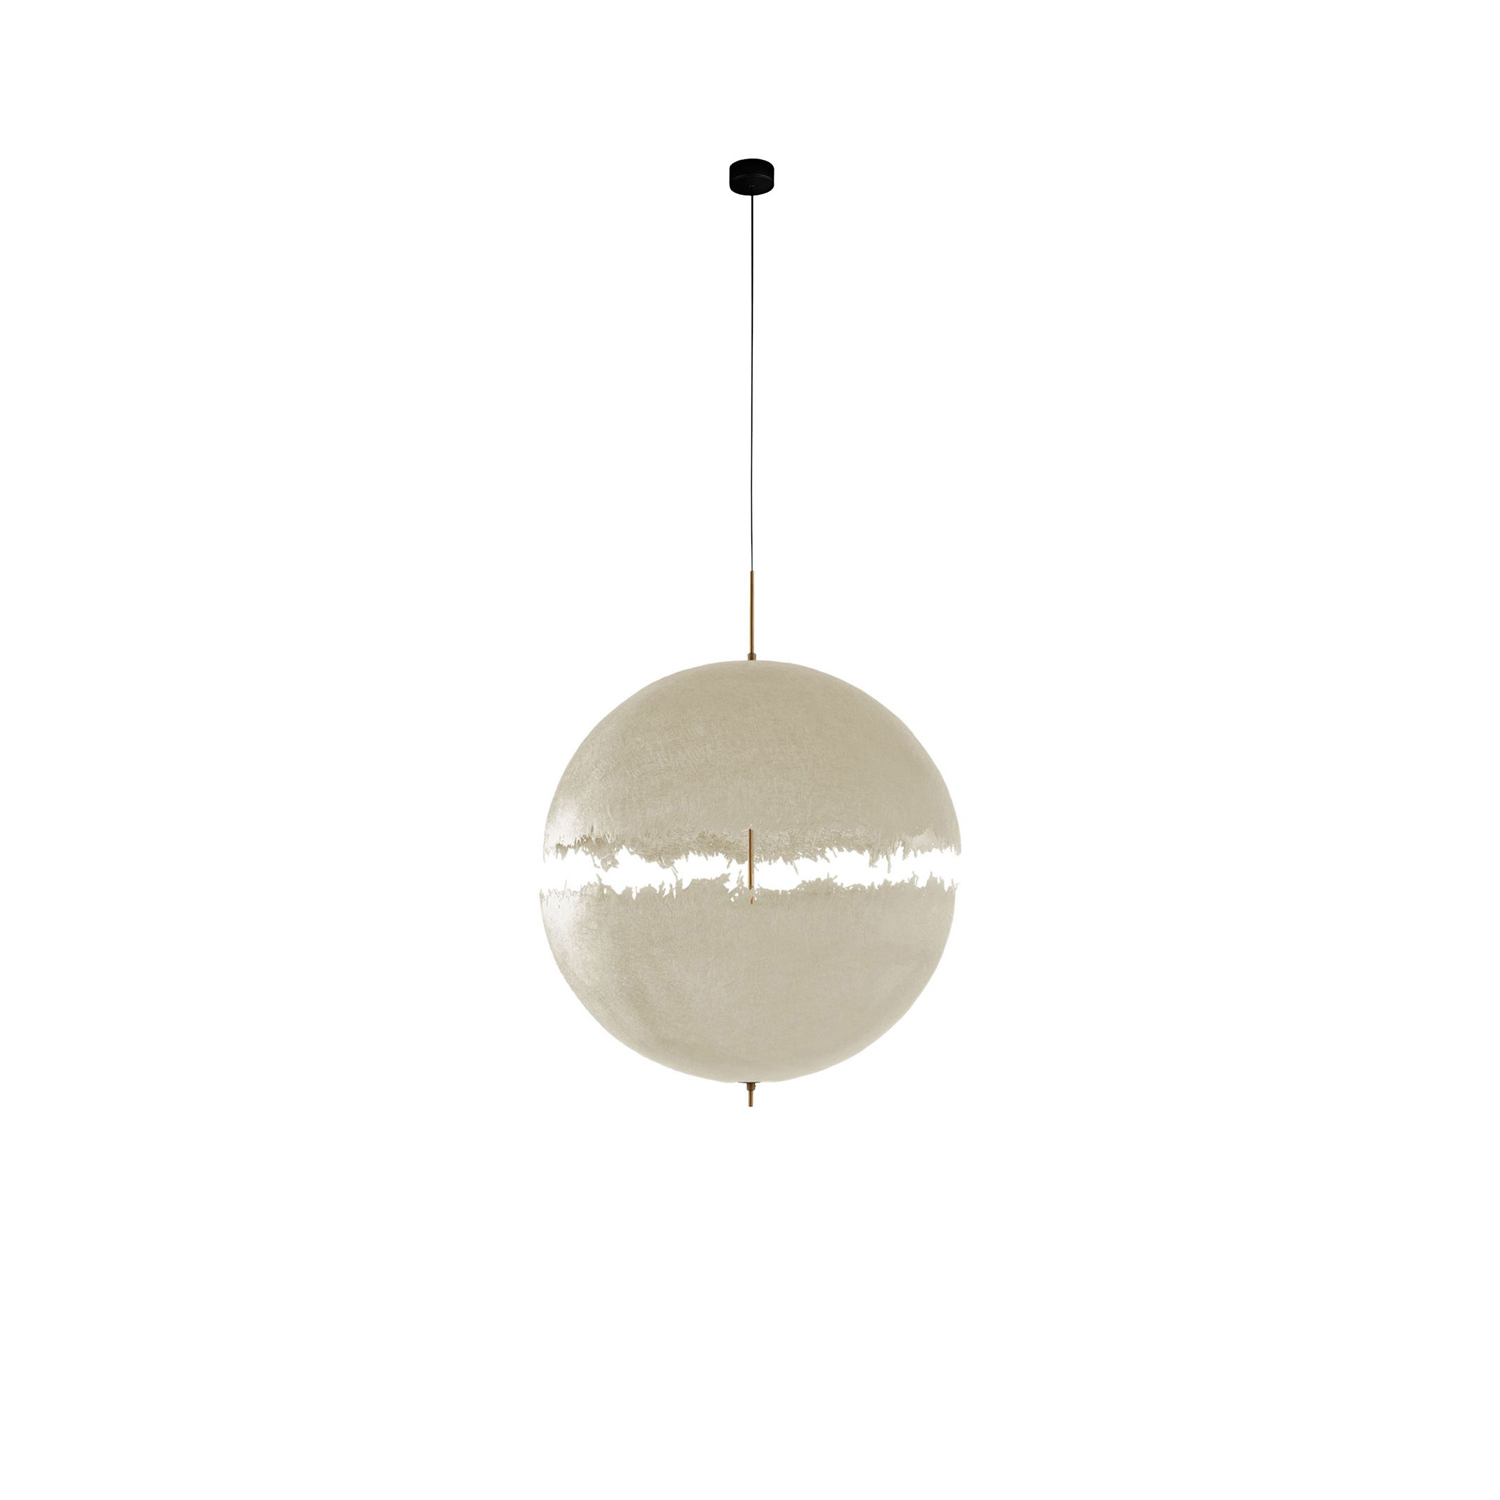 PostKrisi 65 / 66 / 67 Pendant Lamp - With PostKrisi Enzo Catellani began working and moulding fibreglass. This material fascinated him due to its incredible versatility and strength, but above all for the shadows it casts when it interacts with light. | Matter of Stuff